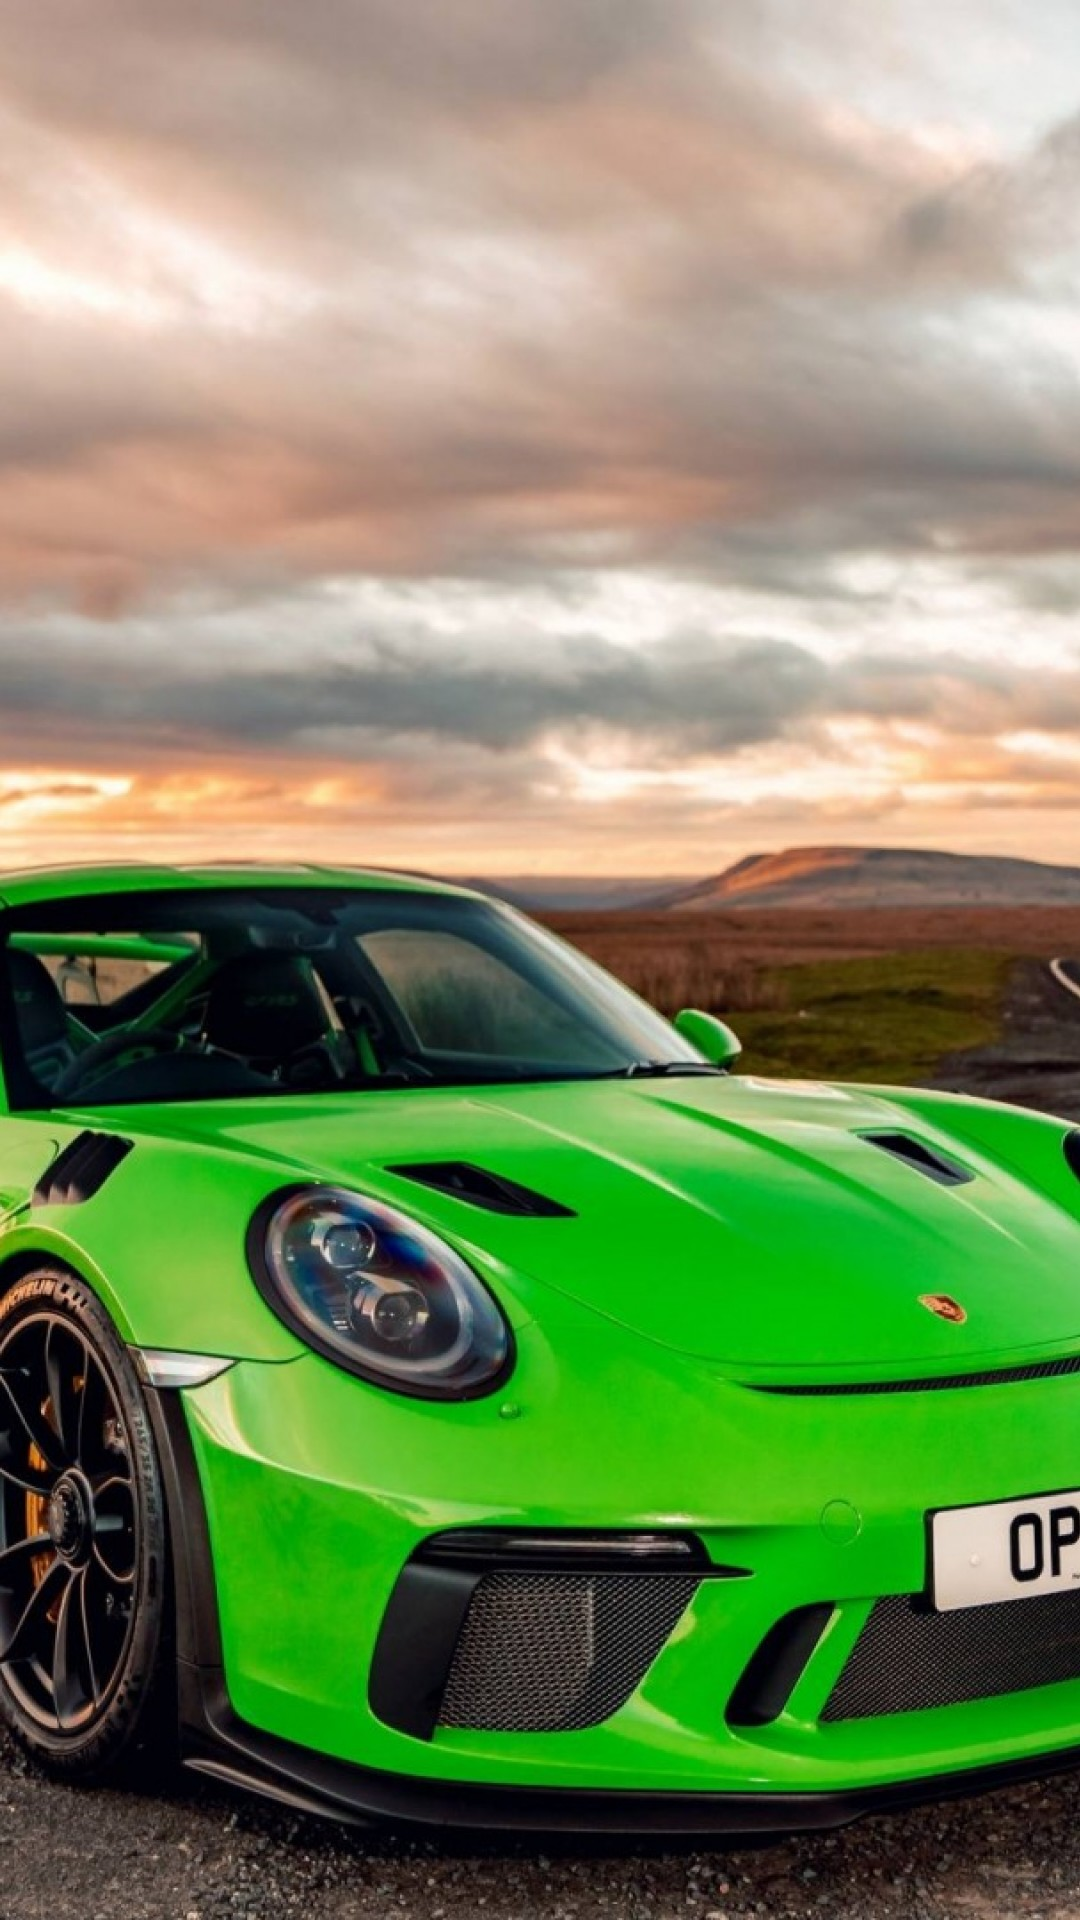 Porsche 911 Gt3 Rs Hd Wallpaper Iphone 6 6s Plus Hd Wallpaper Wallpapers Net